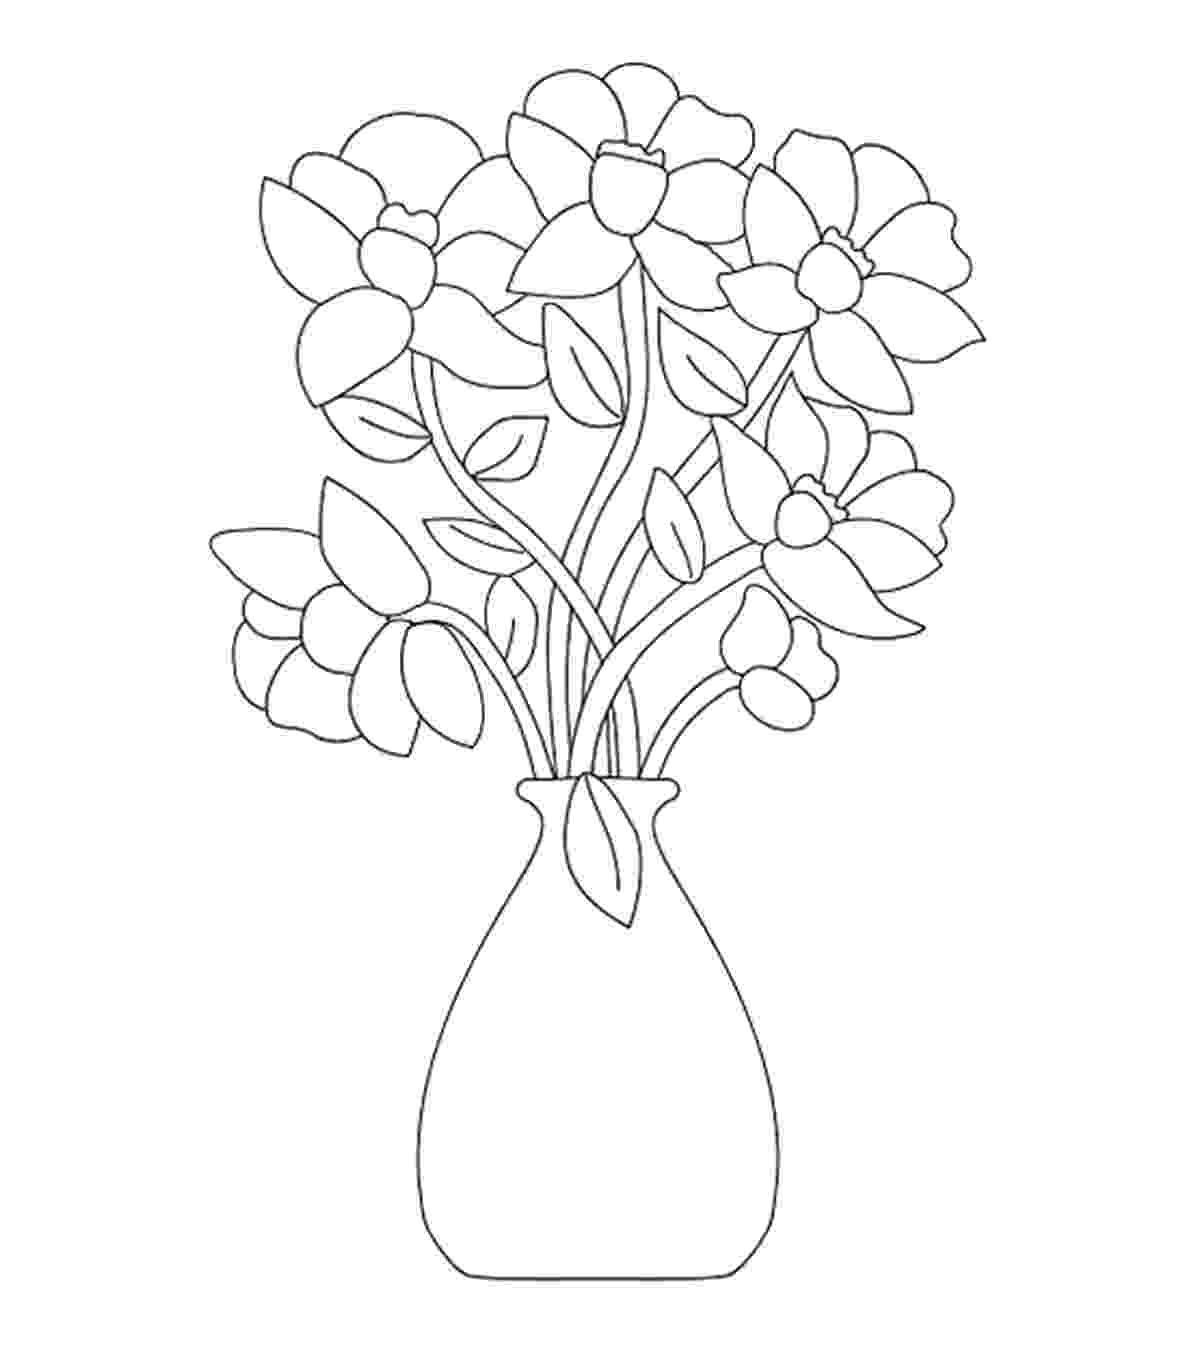 colouring pictures of plants tropical plants and hibiscus flowers coloring book page colouring pictures of plants